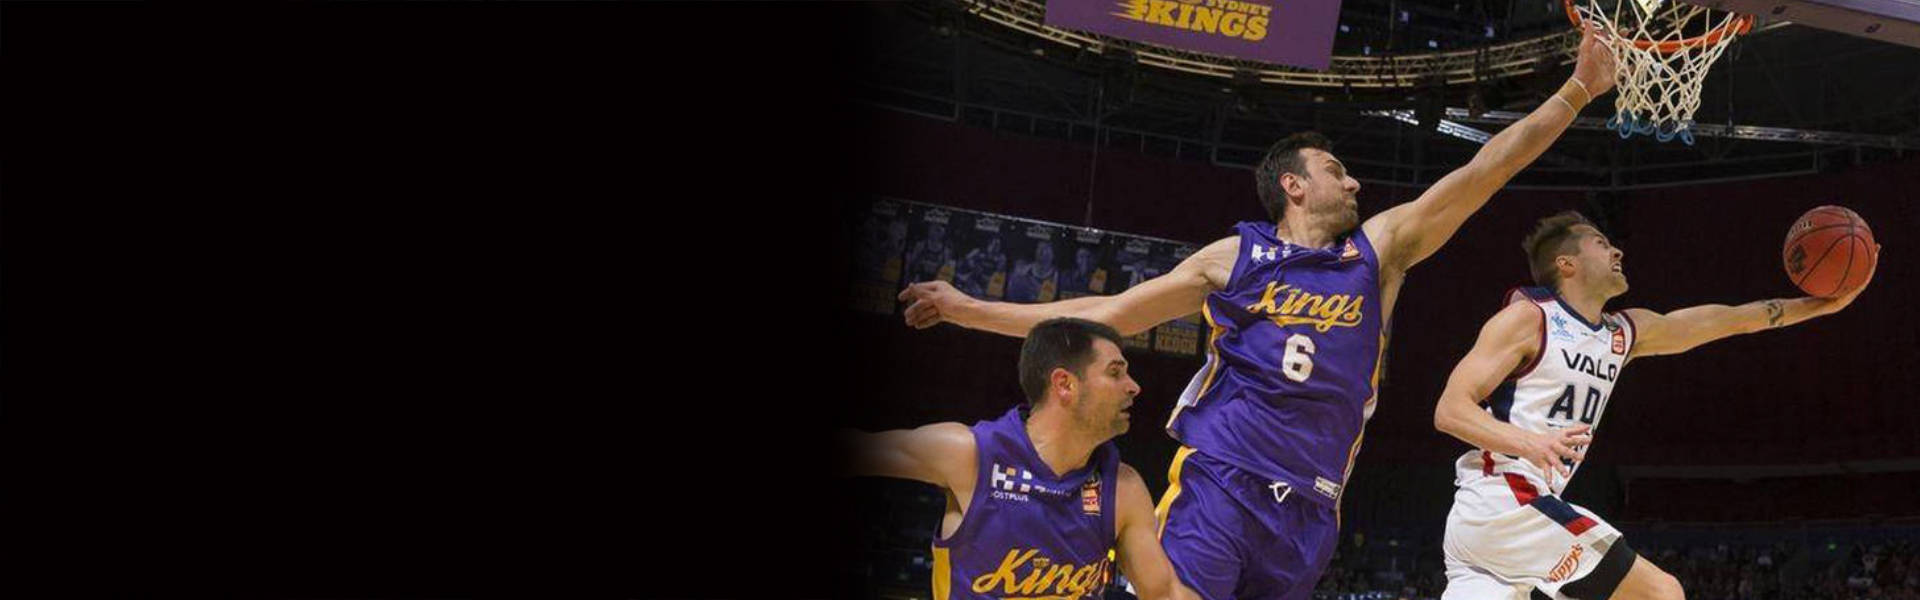 Sydney Kings Packages on sale now